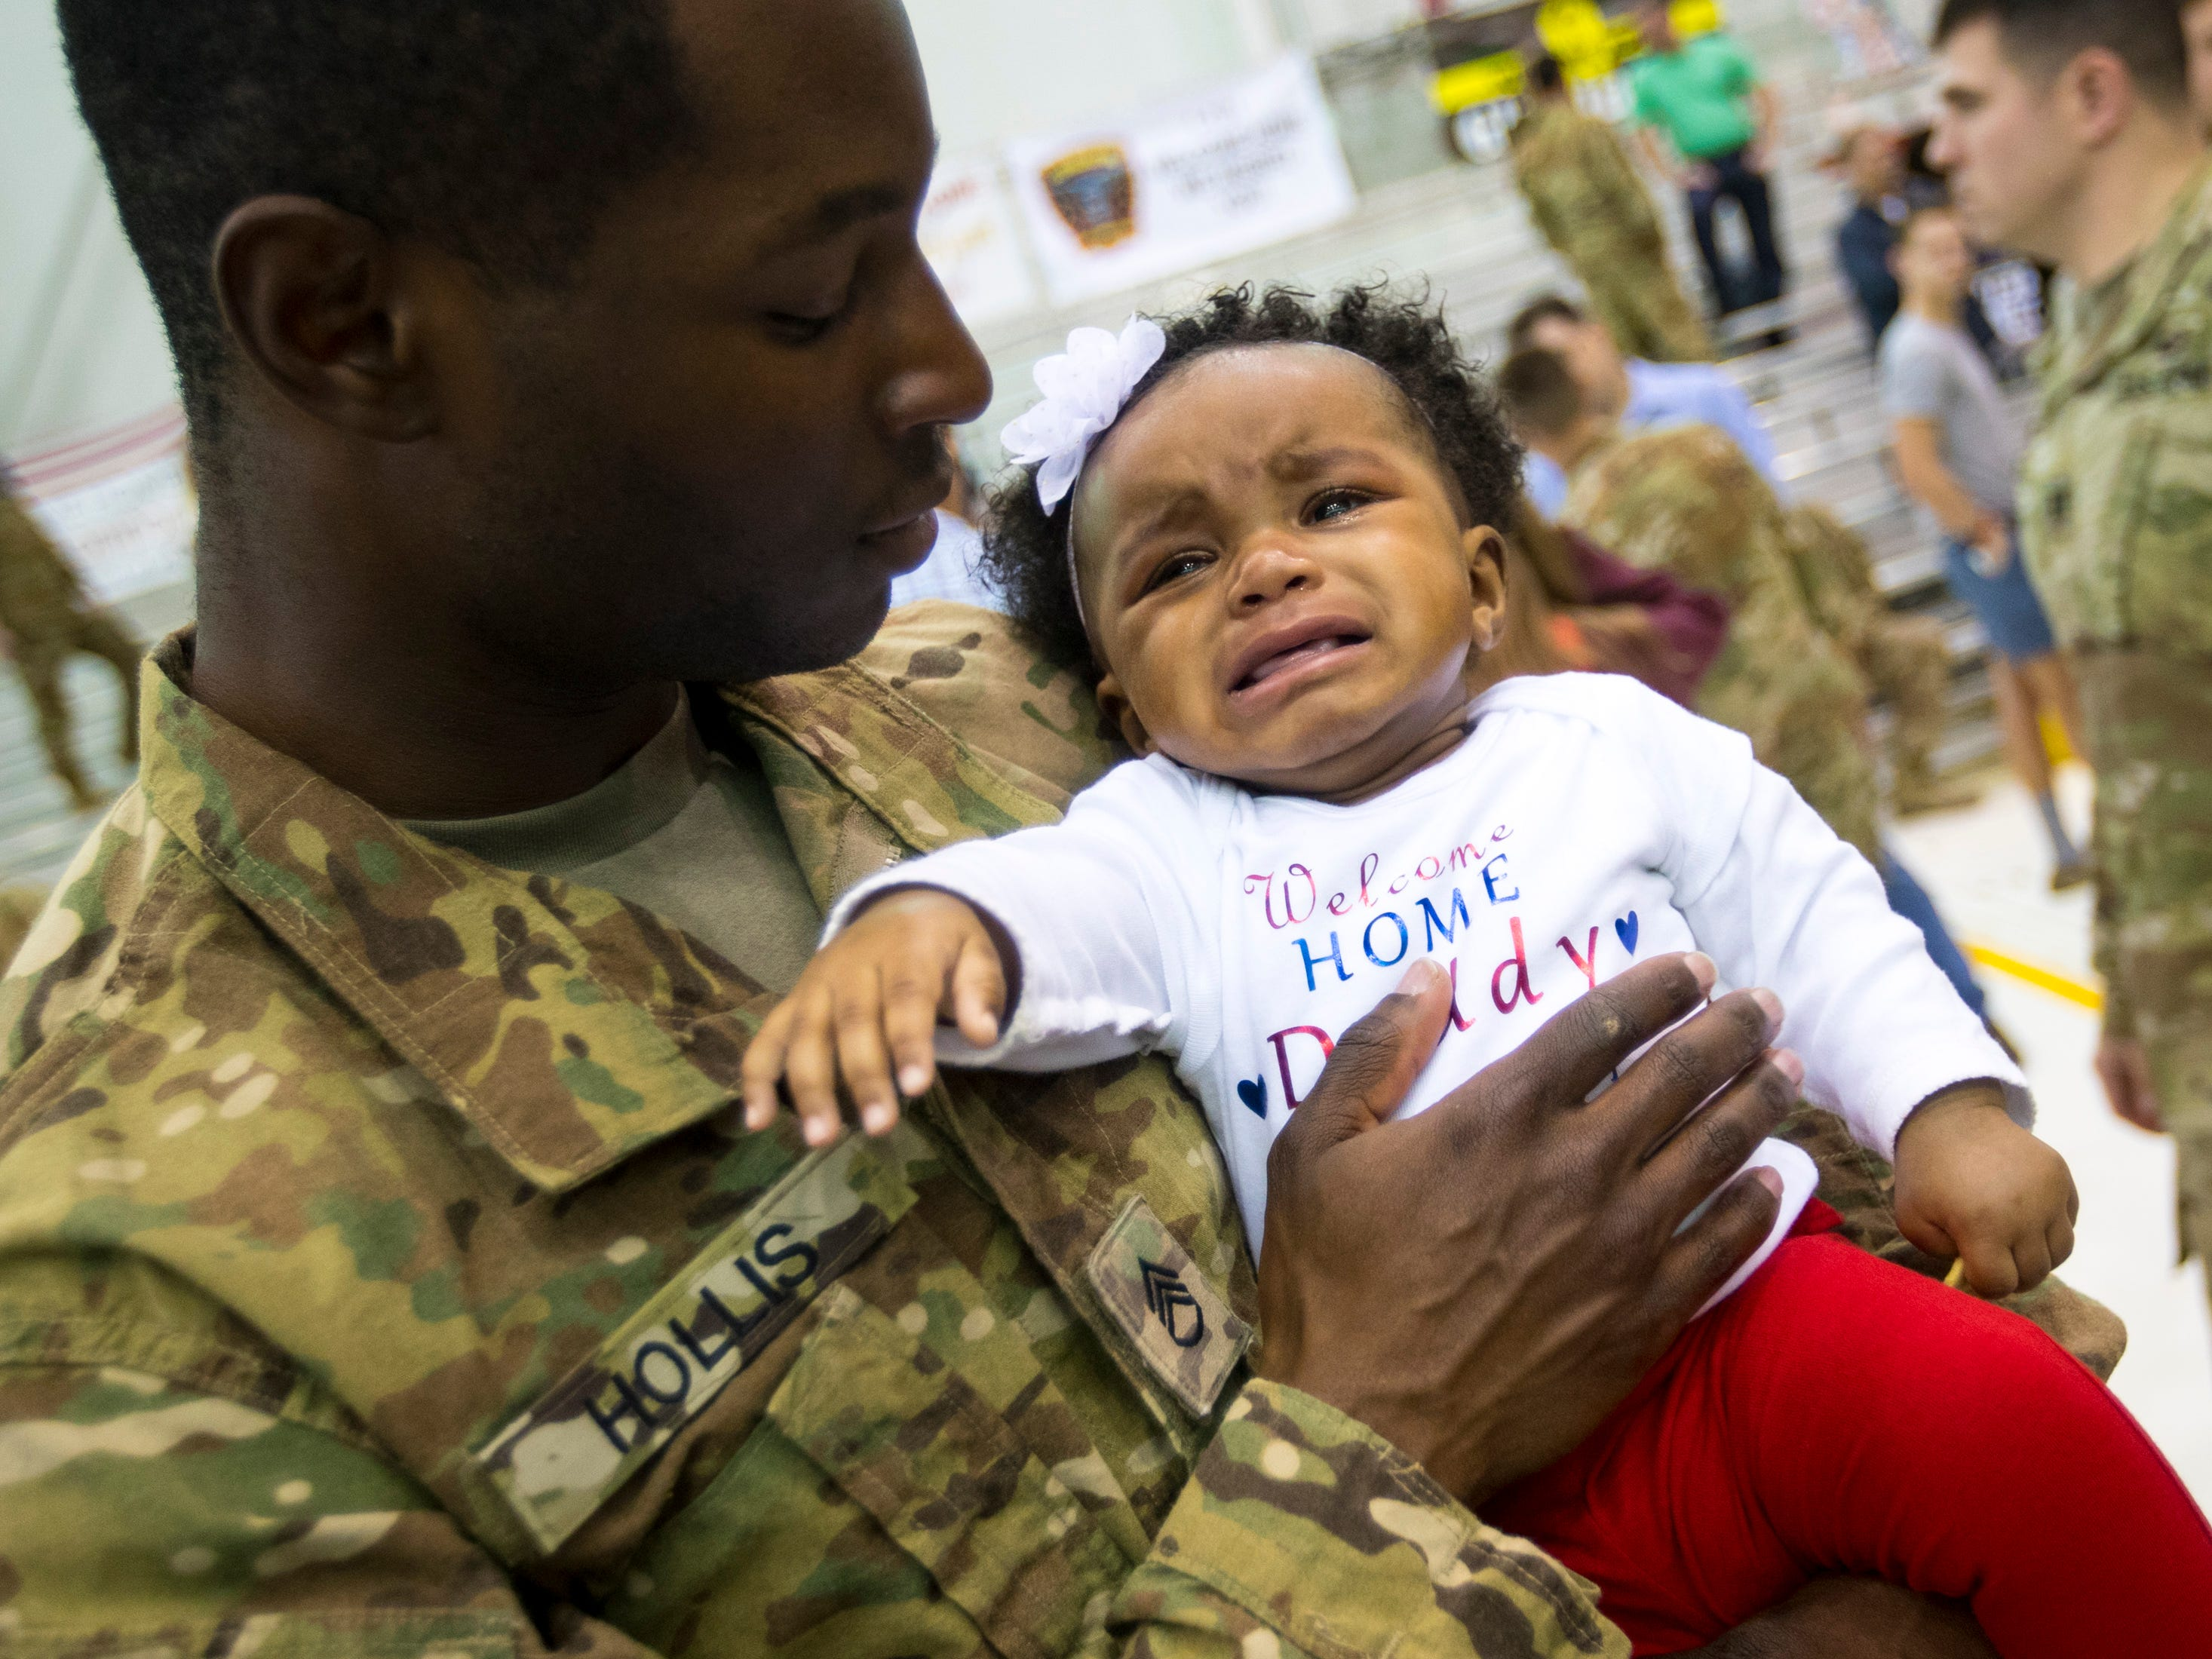 Aleighsia Hollis, 7 months, cries as her dad Wayne Hollis holds her for the first time during the welcome home ceremony for members of the 101st Combat Aviation Brigade at Fort Campbell in Clarksville on Tuesday, Feb. 5, 2019. The soldiers were returning from a nine-month deployment to Afghanistan.